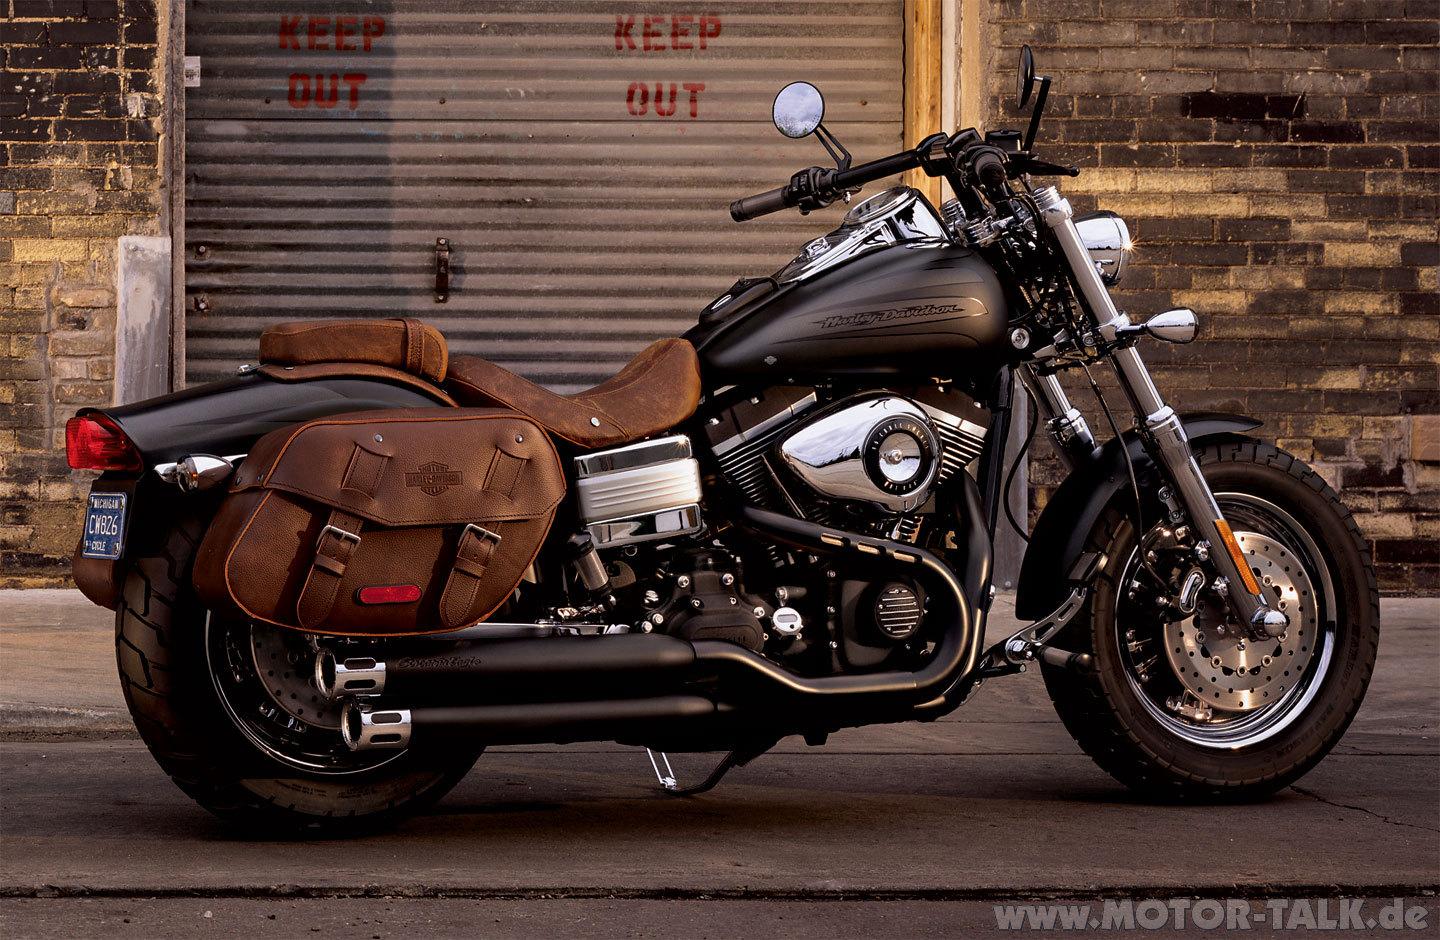 harley davidson harley davidson dyna fat bob moto zombdrive com. Black Bedroom Furniture Sets. Home Design Ideas